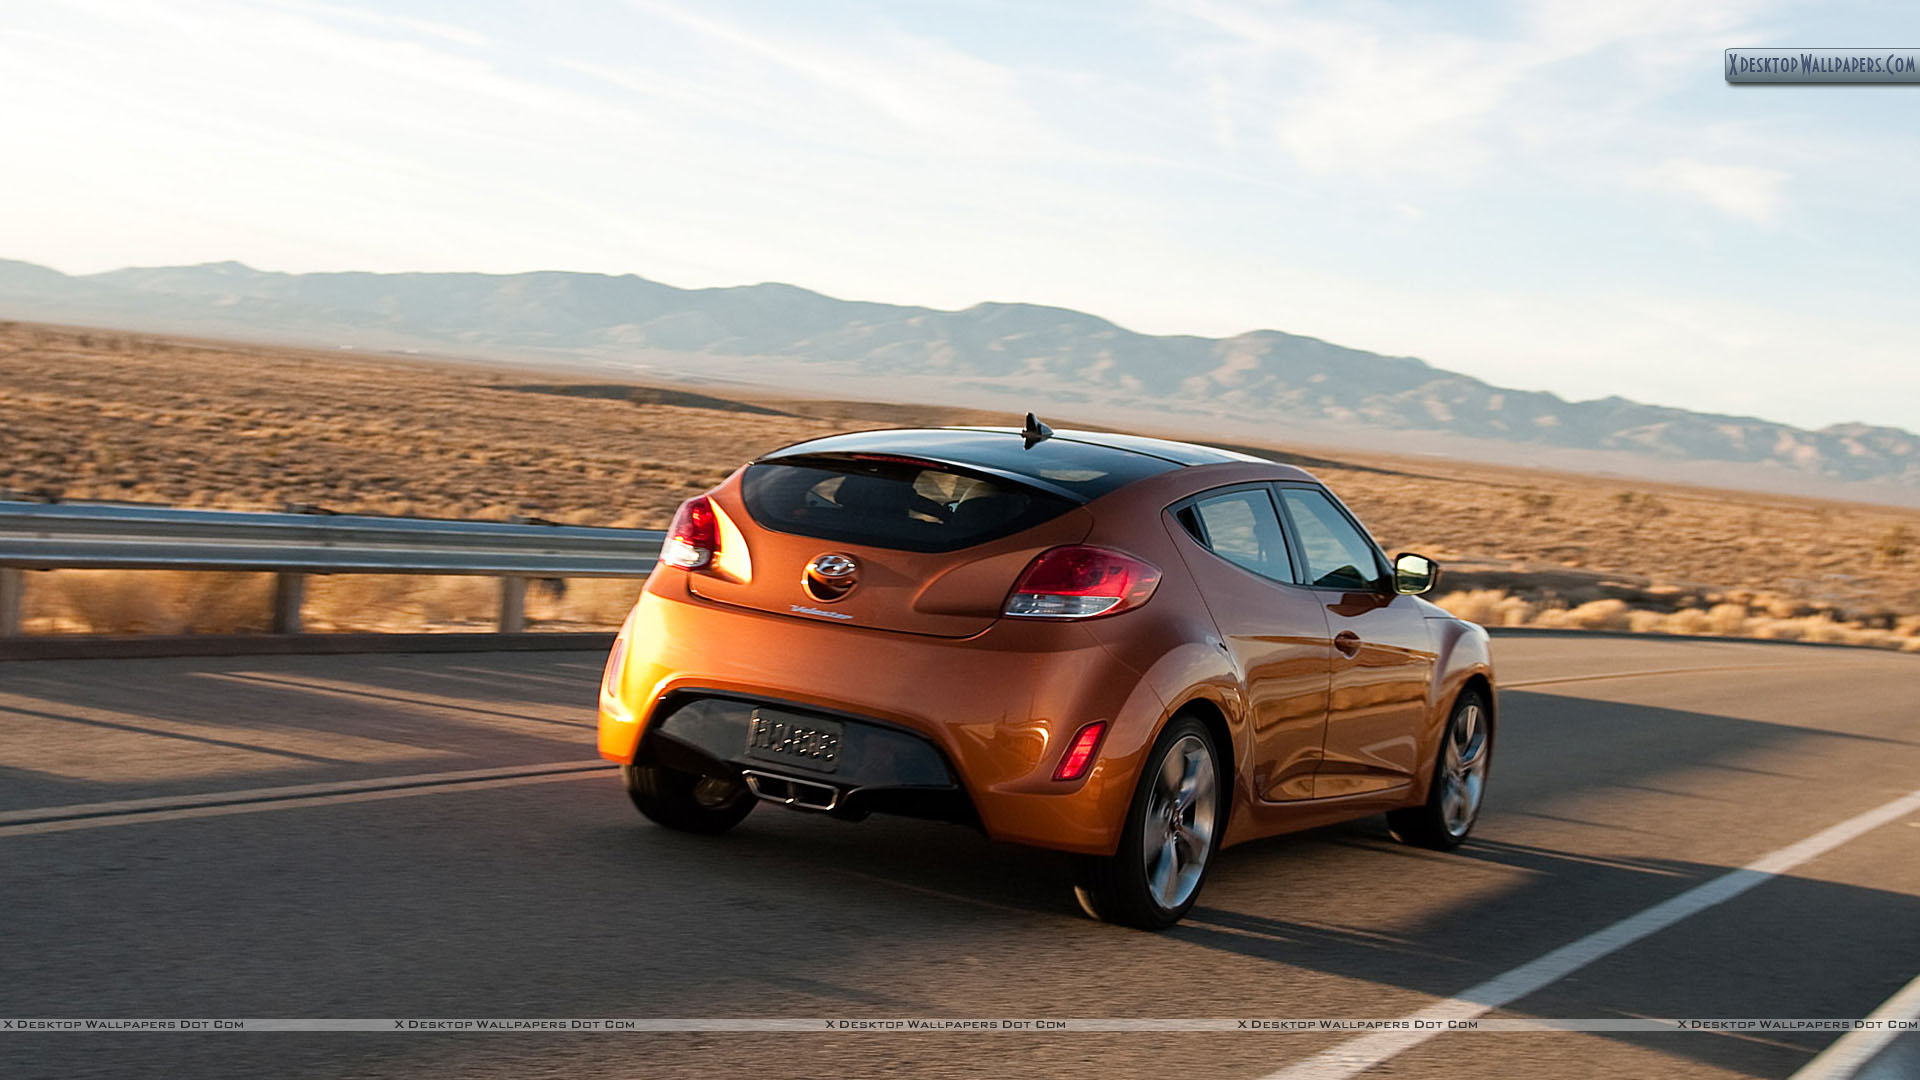 Orange Cars Wallpapers Photos Images In Hd